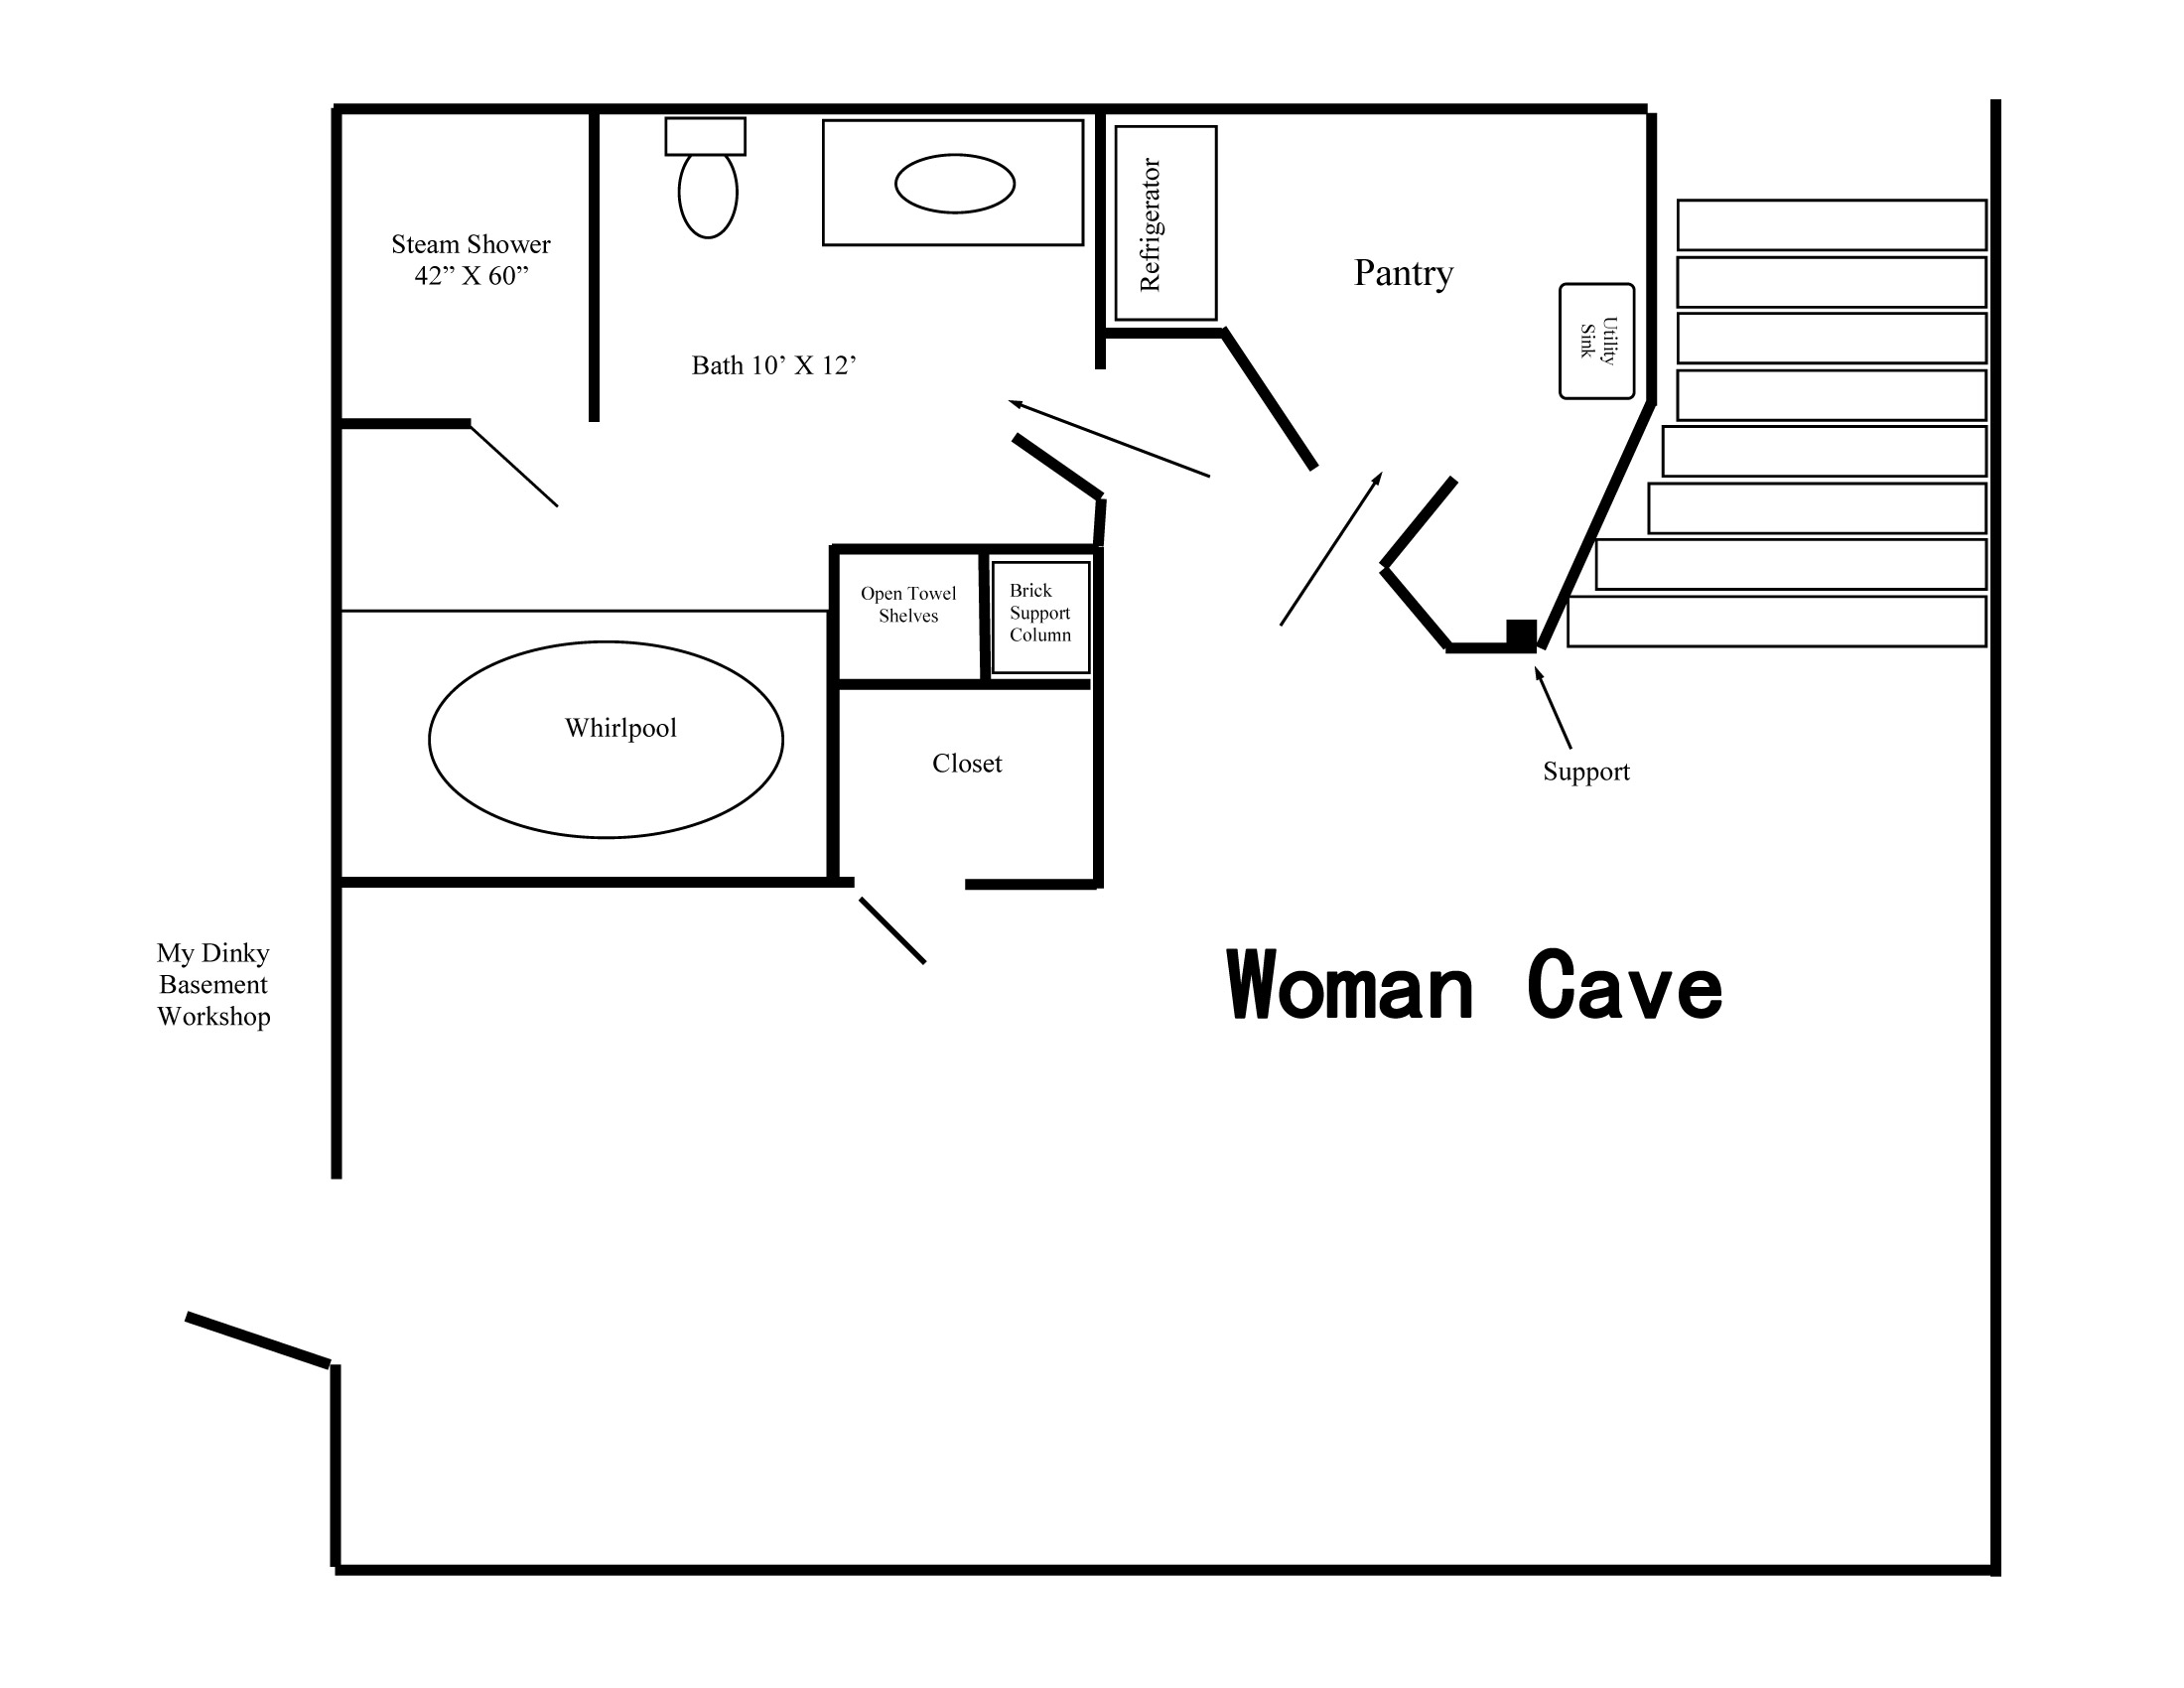 Woman Cave Floor Plan